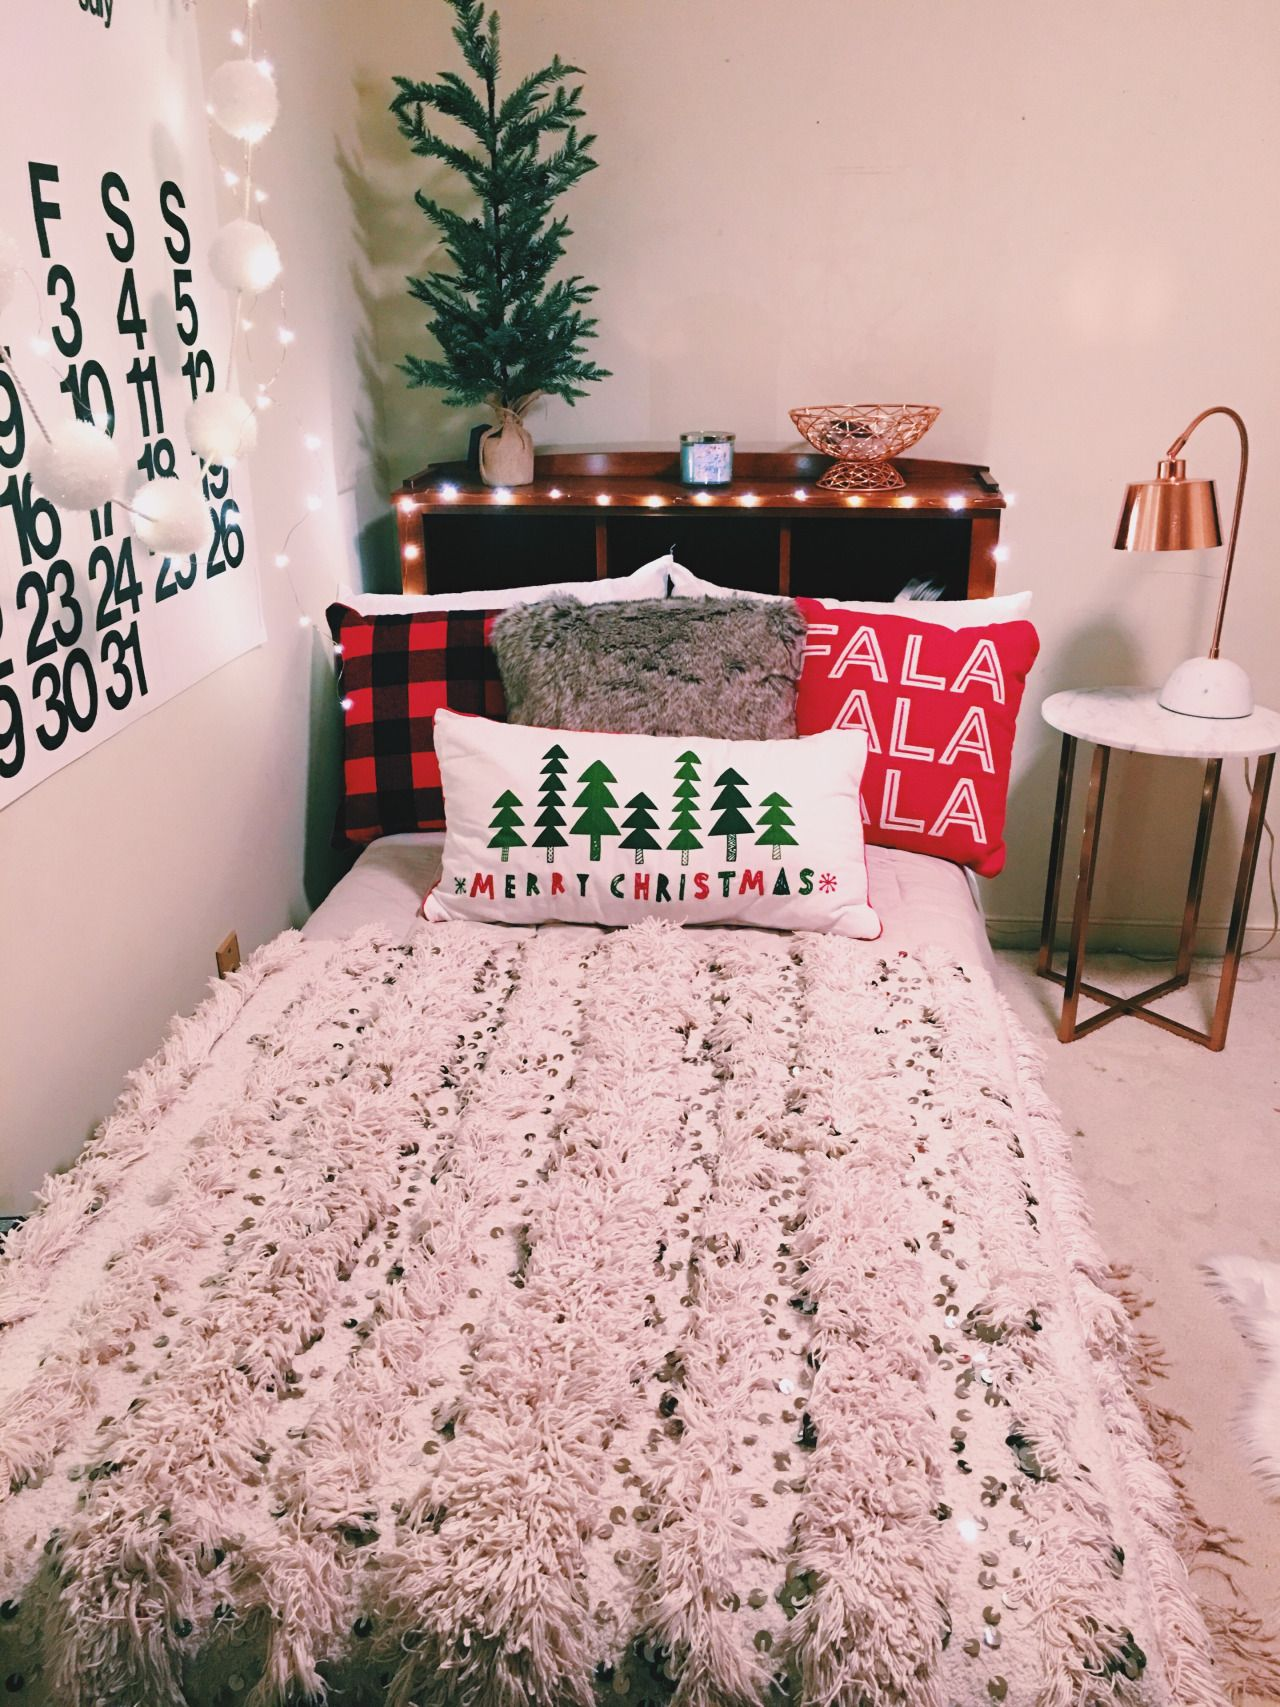 3 Easy Dorm Decorating Ideas for the Winter Holidays | Dorm ...